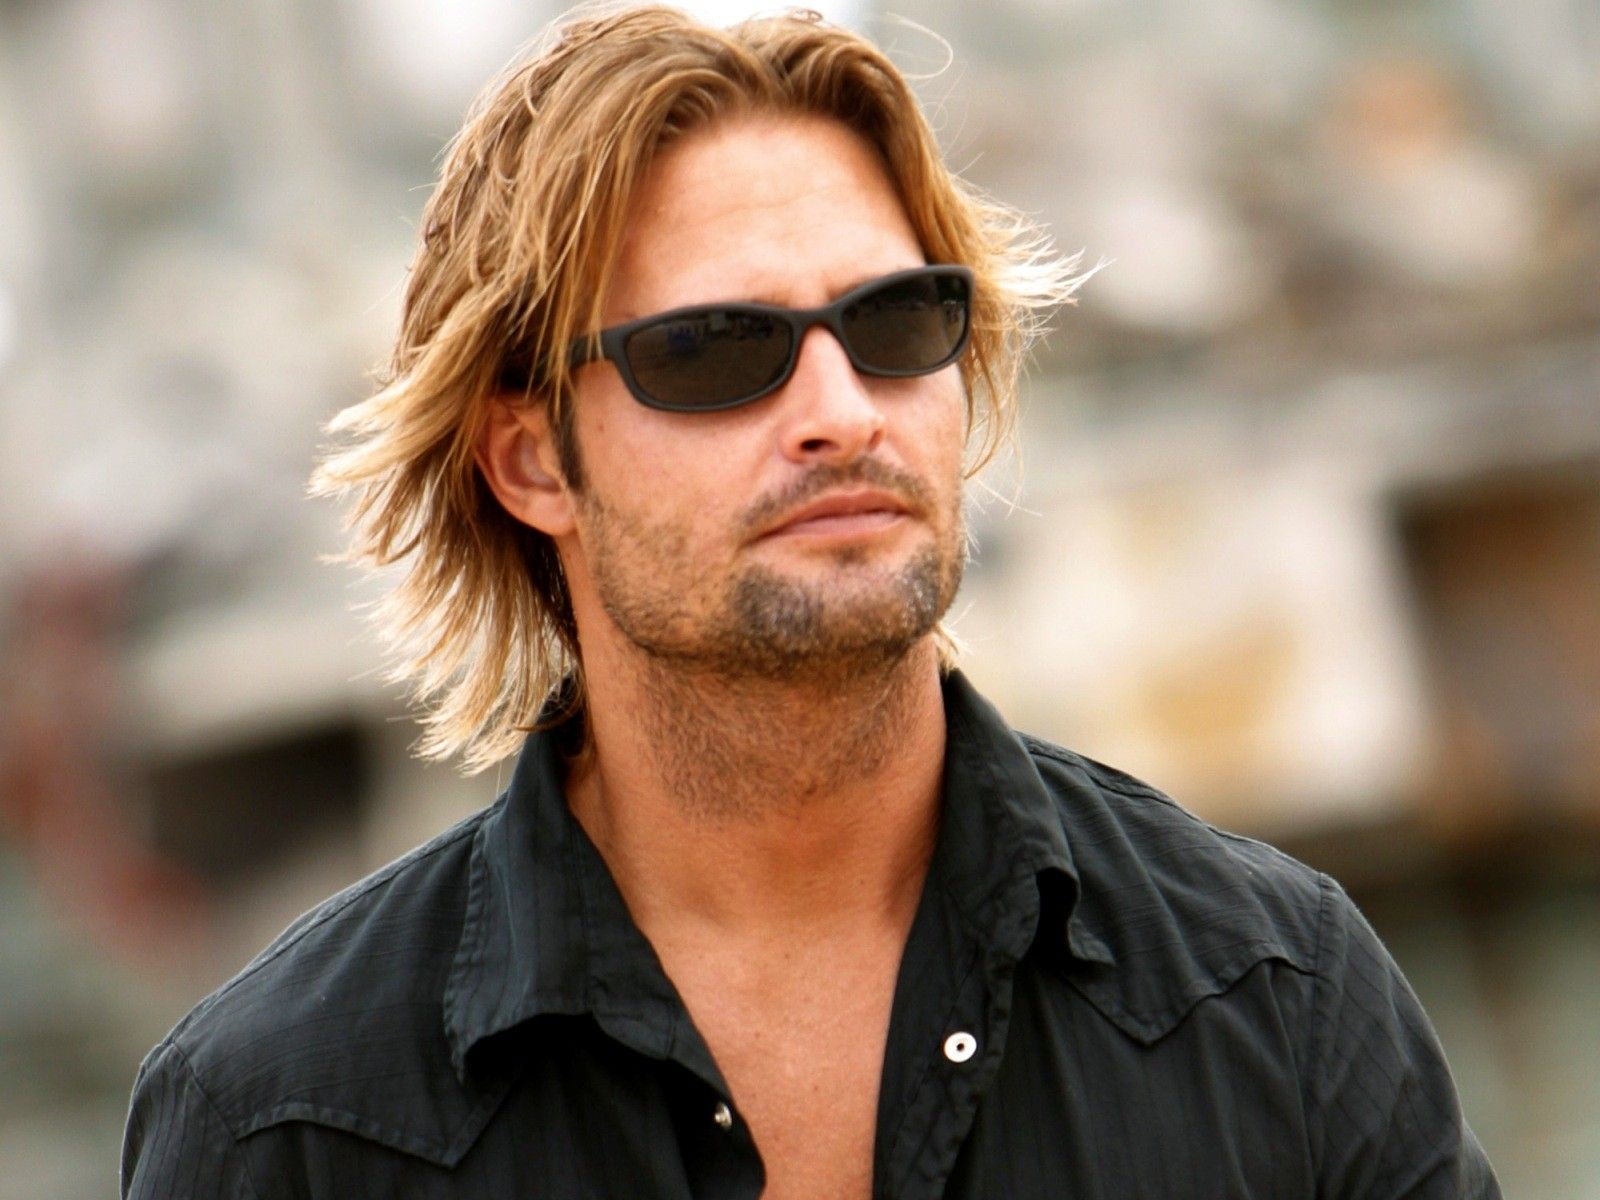 josh holloway stylejosh holloway wife, josh holloway witcher, josh holloway and his wife, josh holloway height, josh holloway colony, josh holloway young, josh holloway gif, josh holloway and yessica kumala, josh holloway son, josh holloway movies, josh holloway style, josh holloway interview, josh holloway insta, josh holloway short hair, josh holloway intelligence, josh holloway photo, josh holloway film, josh holloway listal, josh holloway look alike, josh holloway filmleri